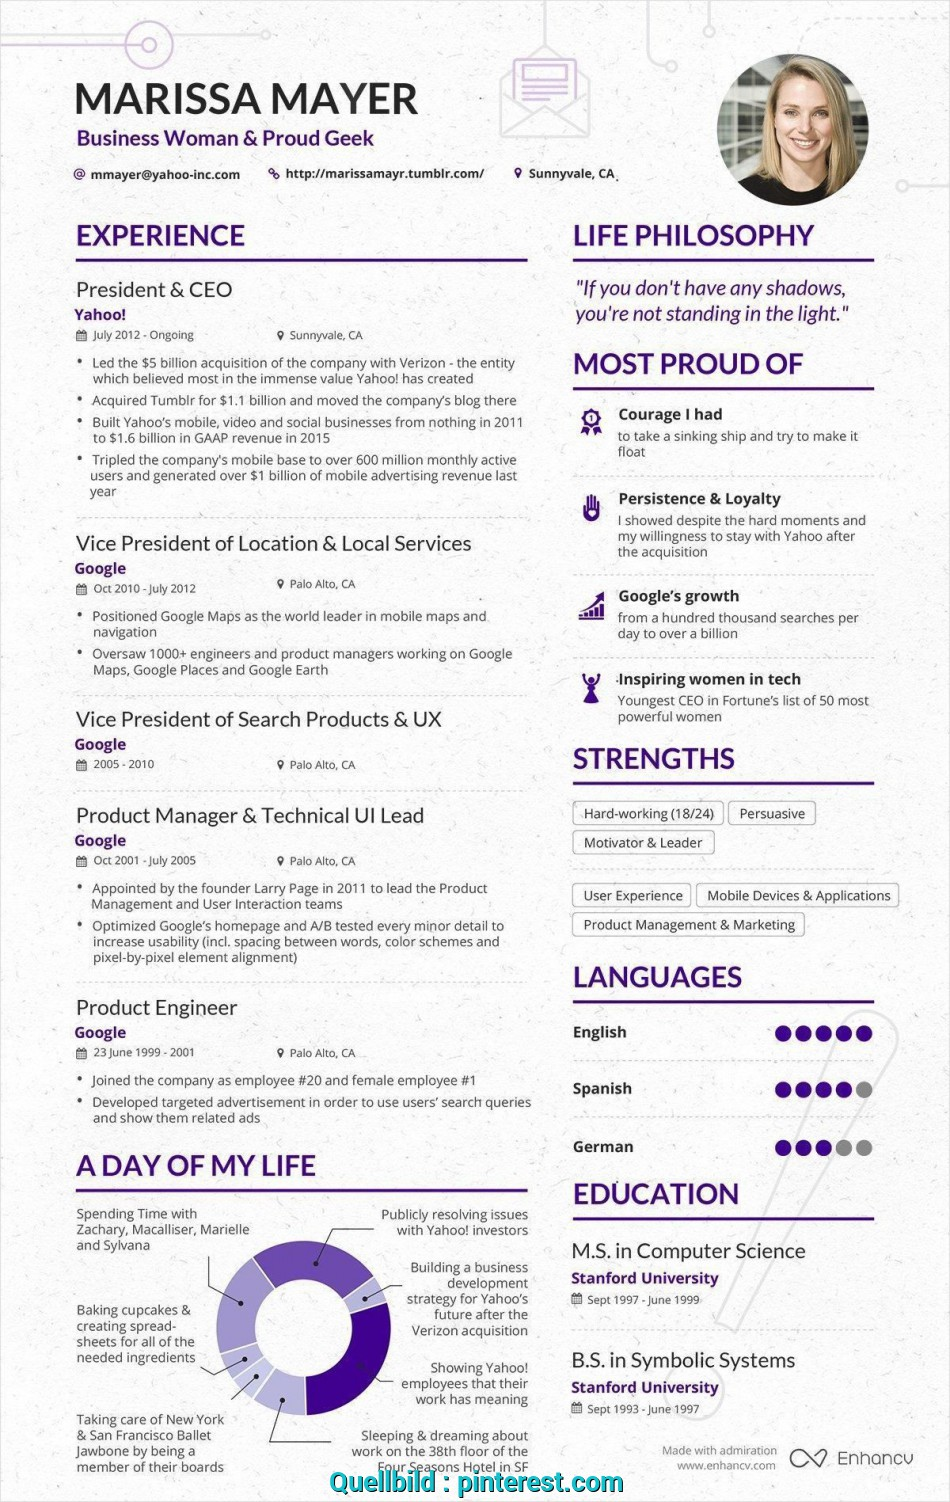 Großartig Enhancv, Business Insider Resume Ideas, Resume Layout, Resume Design, Resume Cv, Cv Template Yahoo Ceo